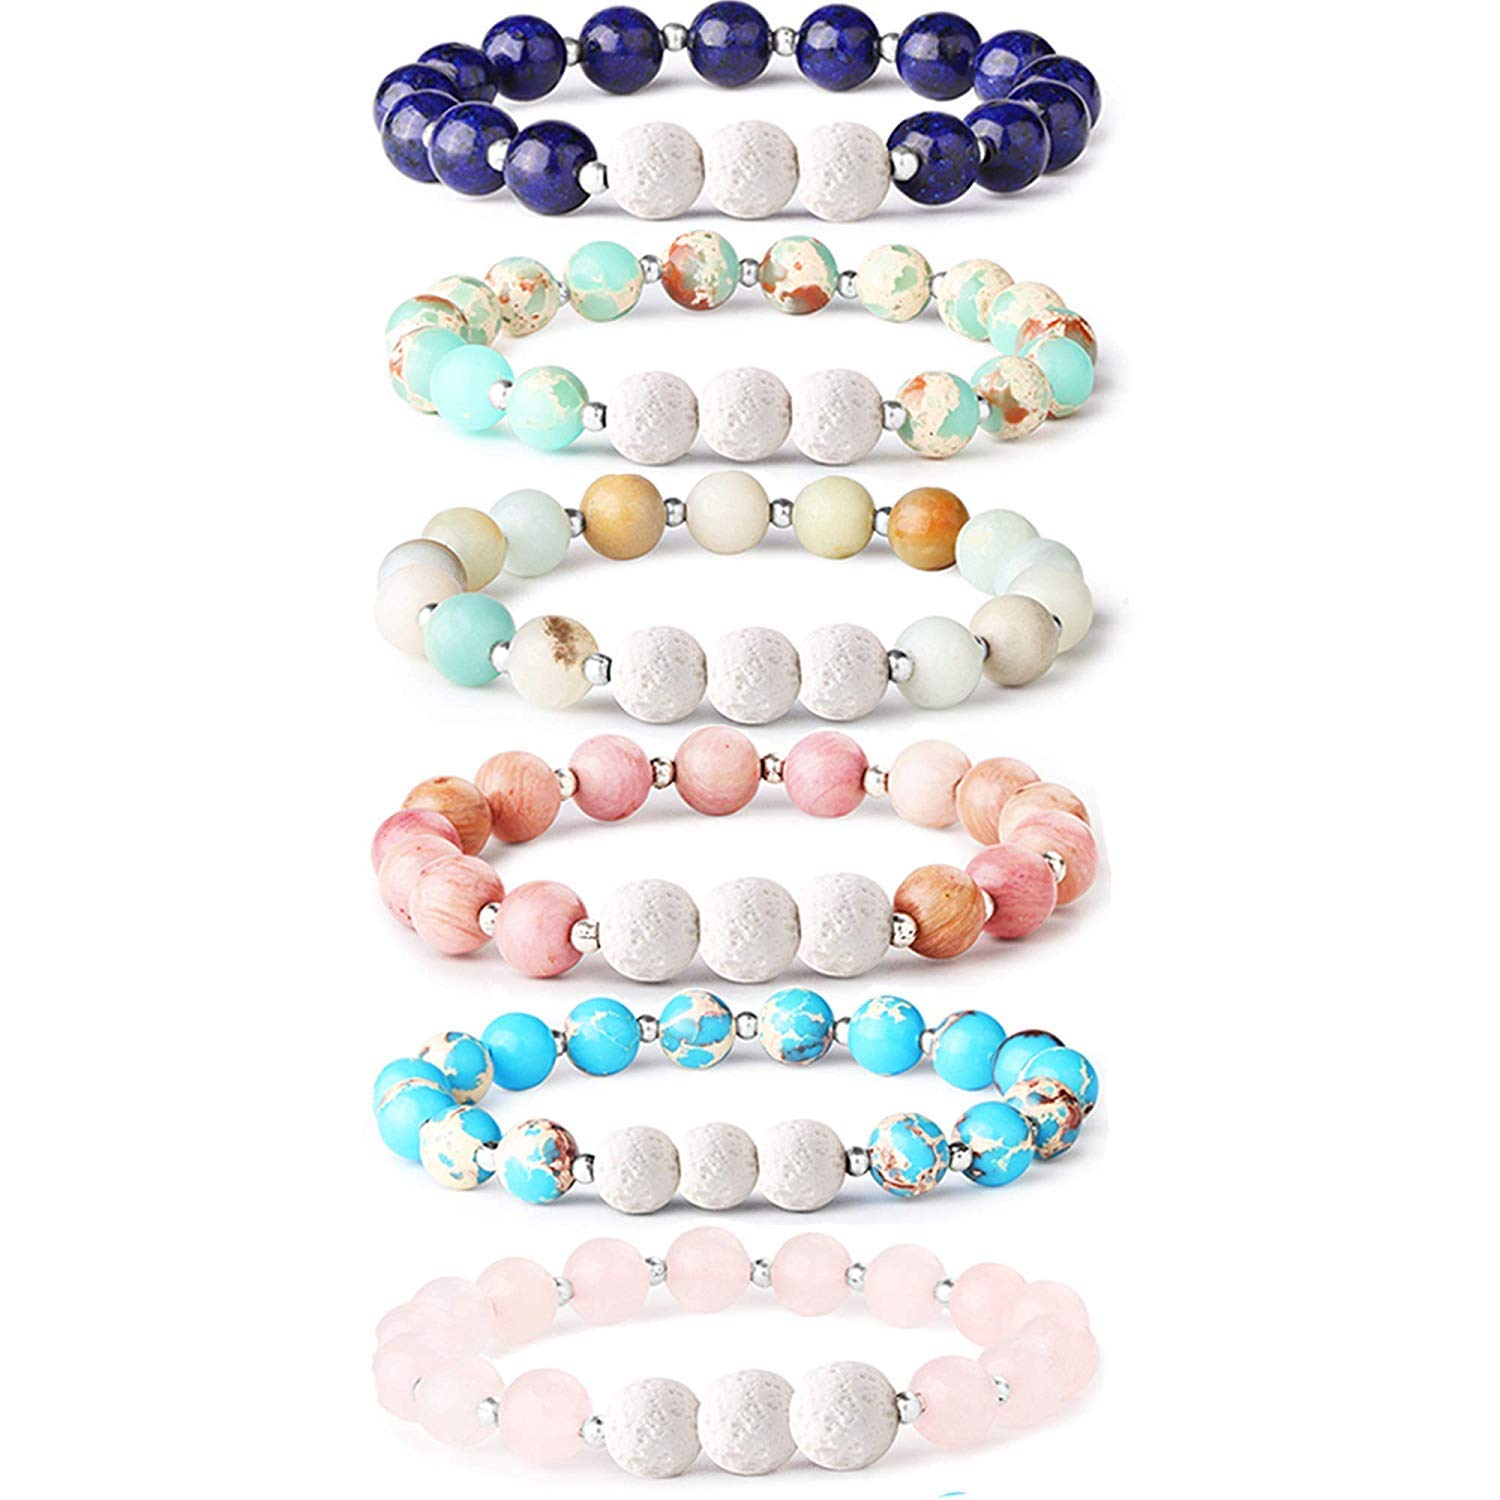 Adramata 6Pcs Lava Rock Stone Aromatherapy Essential Oil Diffuser Bracelet for Women Girls Natural Gemstone Healing Crystal Bracelet by Adramata